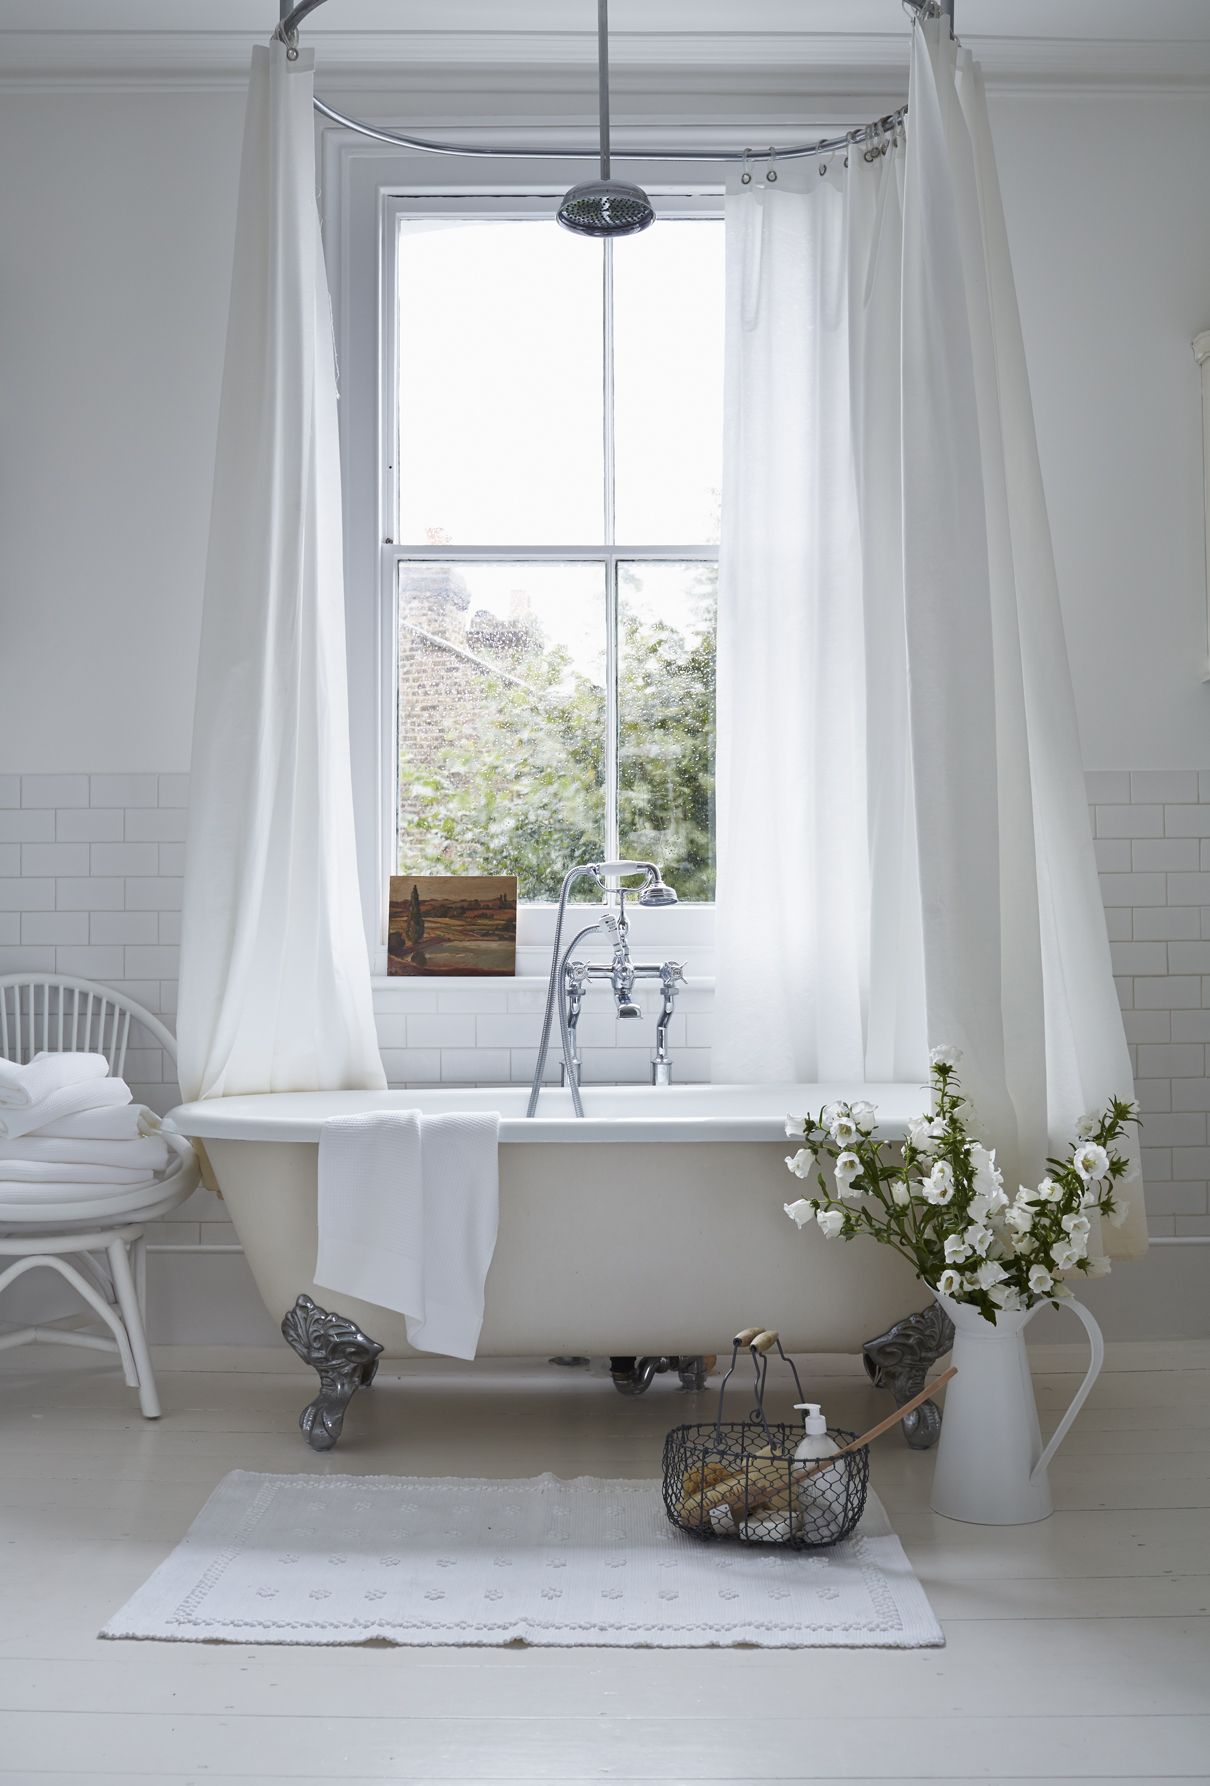 Love This Minus The Curtain Rail One Day I Will Have A Stand Alone Bath Love The Flowers In The Jug Chic Bathrooms Beautiful Bathrooms Bathroom Inspiration